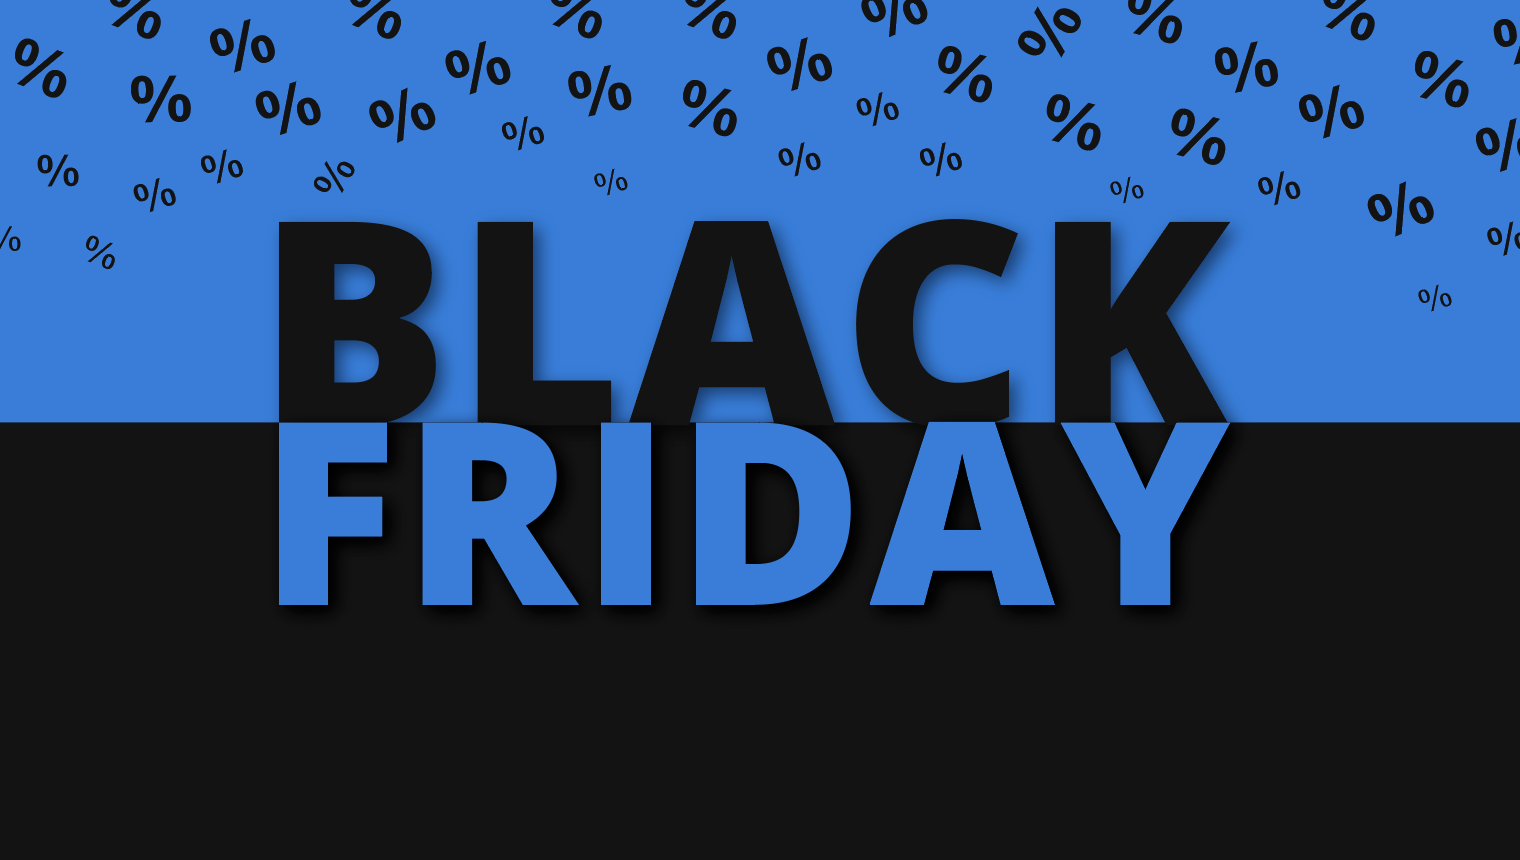 LE BLACK FRIDAY CHEZ ACCESSOLUTIONS !